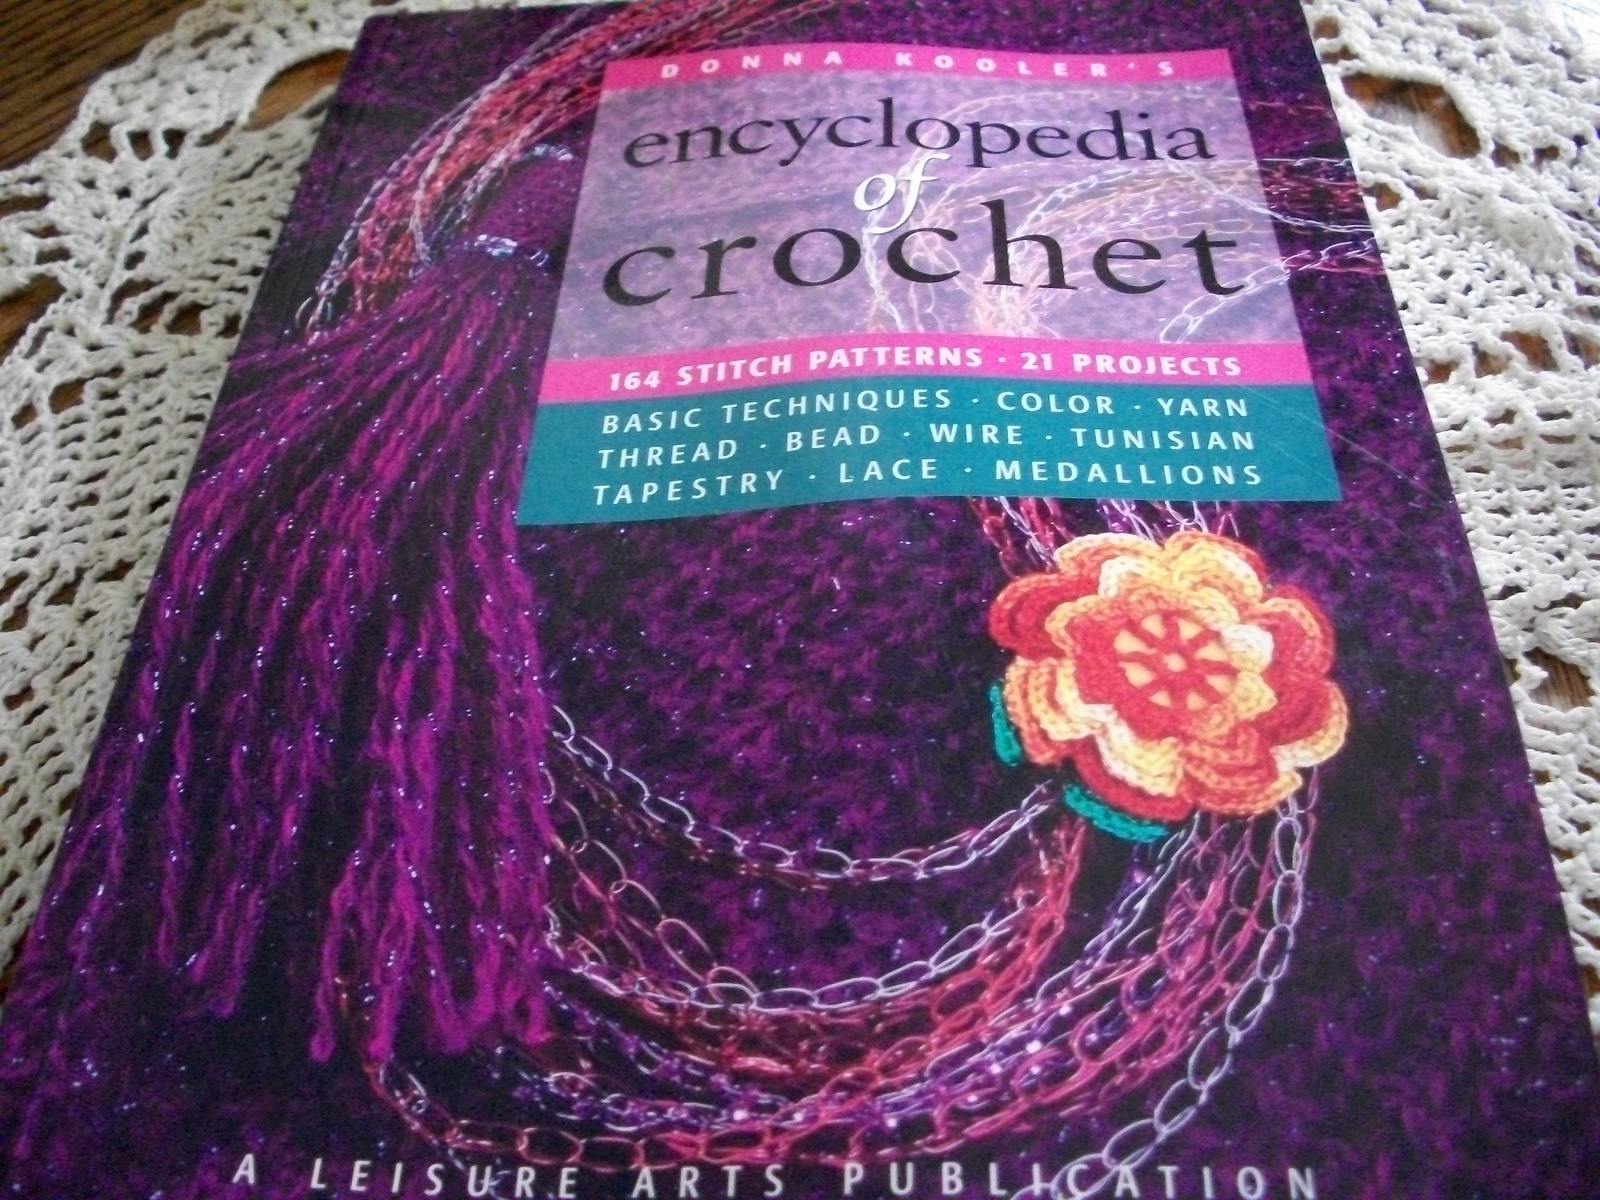 Primary image for Donna Kooler's Encyclopedia of Crochet